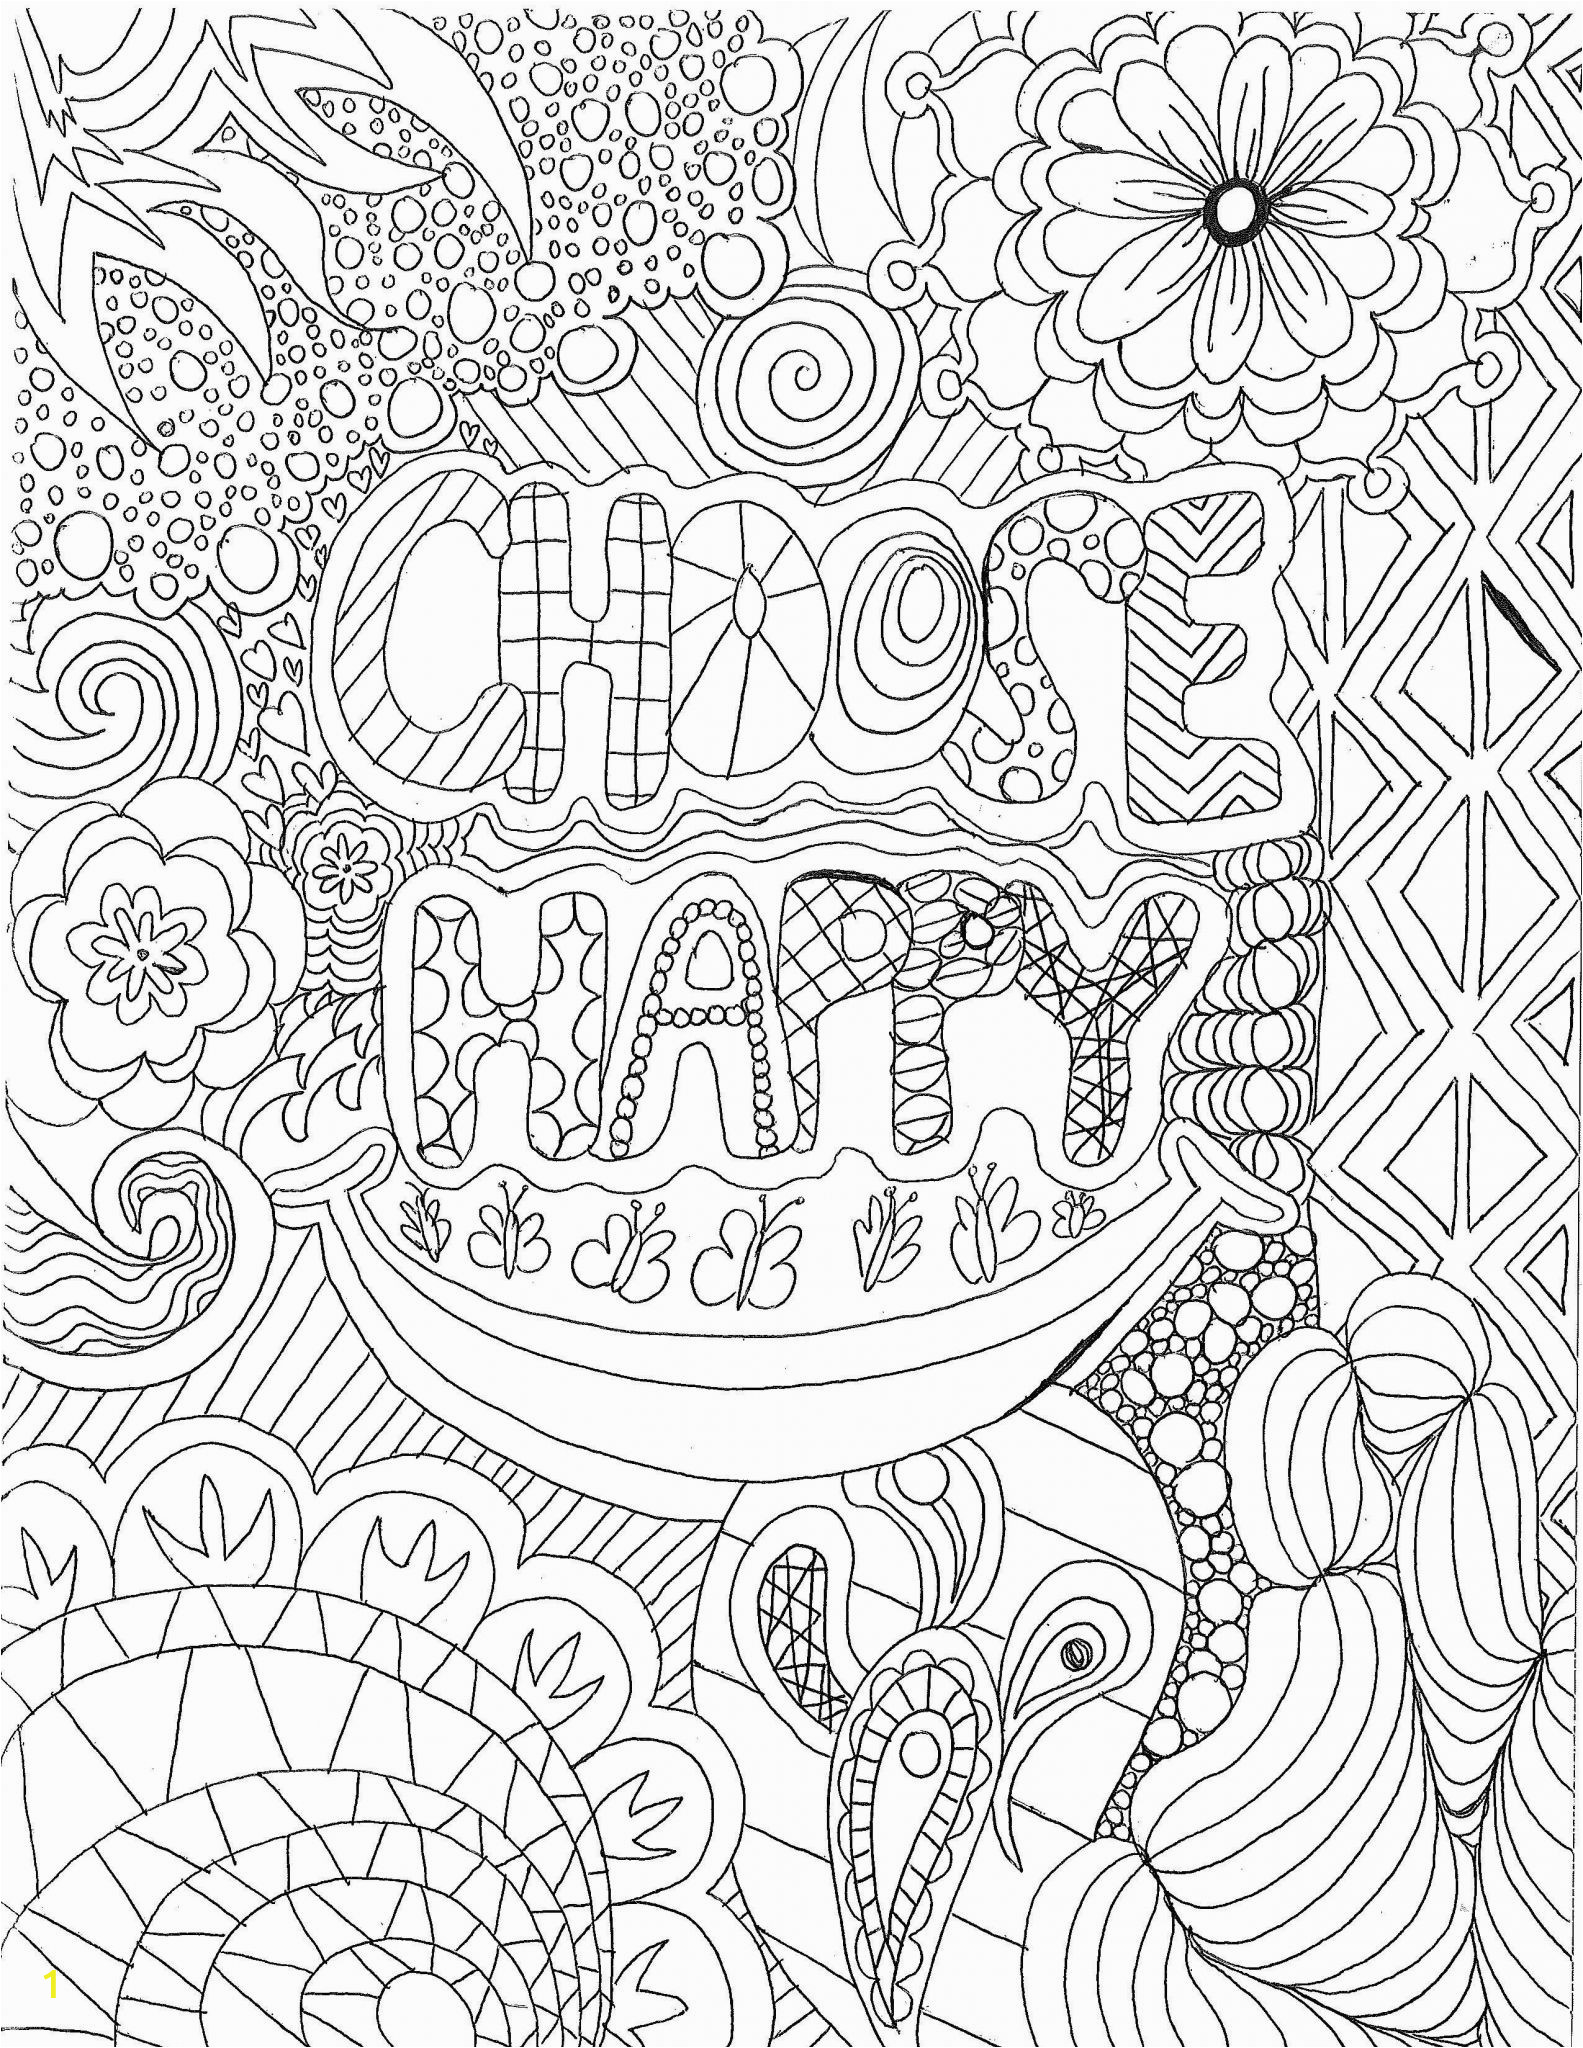 coping skills worksheets for youth with coping skills coloring pages making good choices for kids worksheets of coping skills worksheets for youth